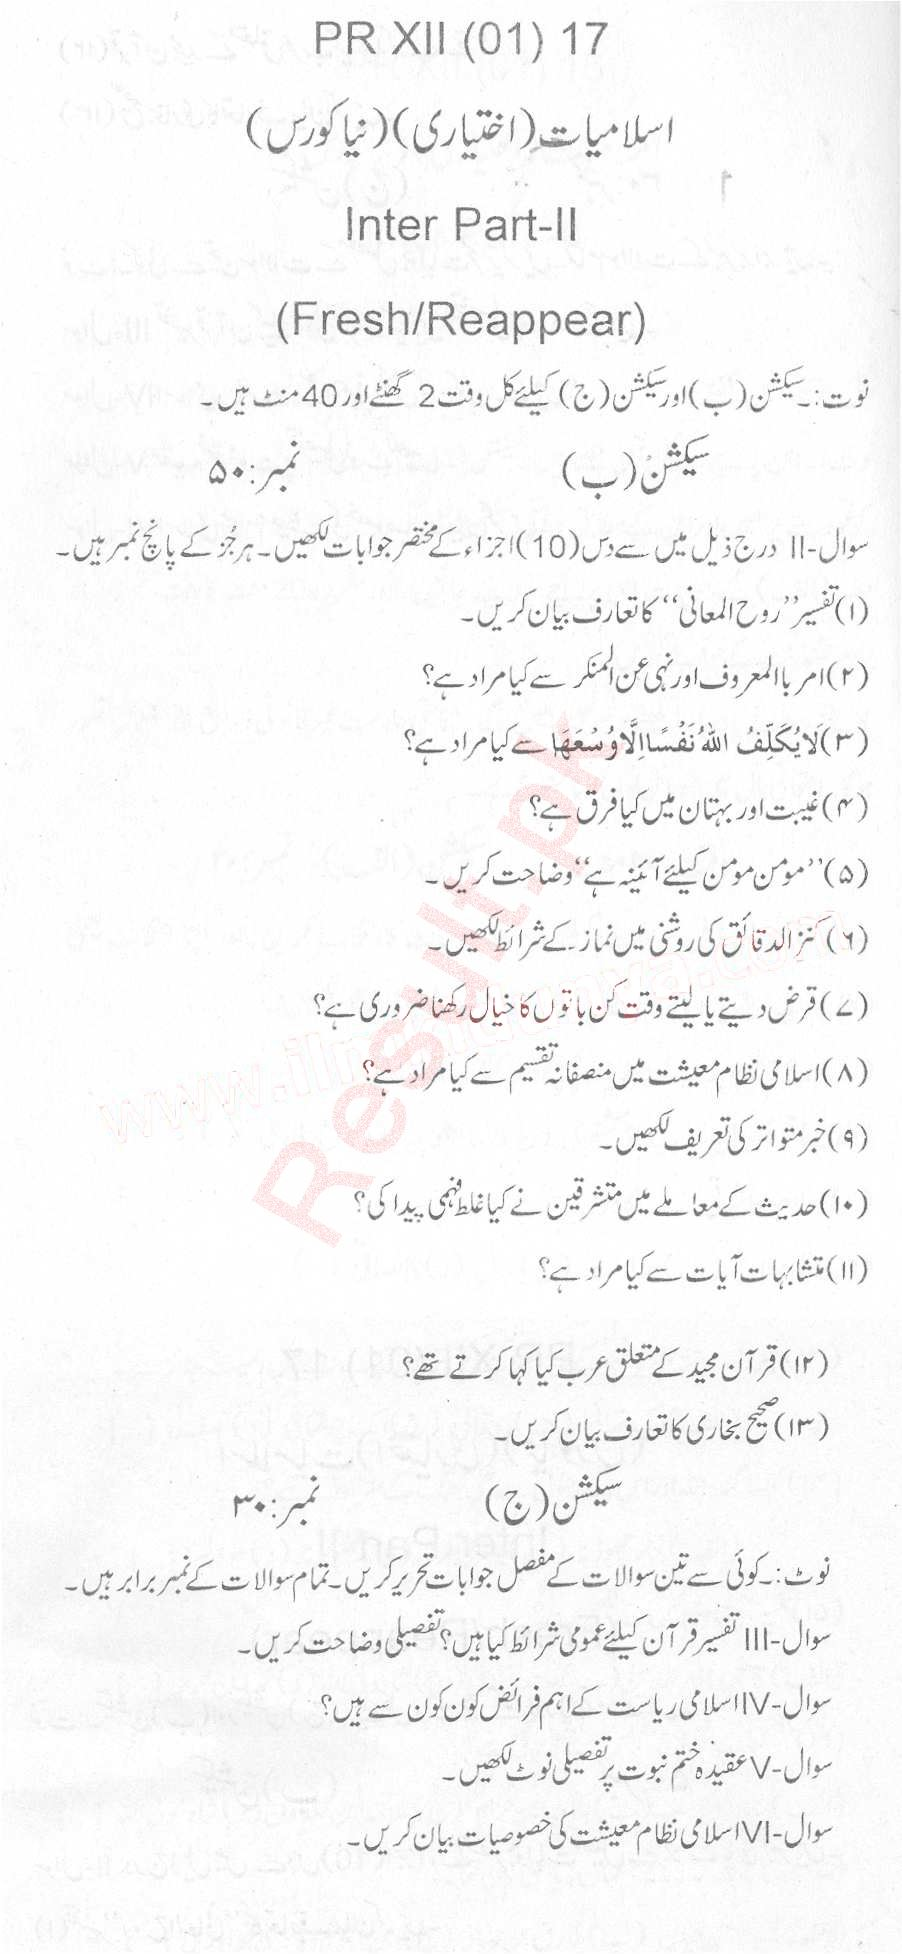 BISE Peshawar Board Past Papers 2018 2019 Inter Part 1 2